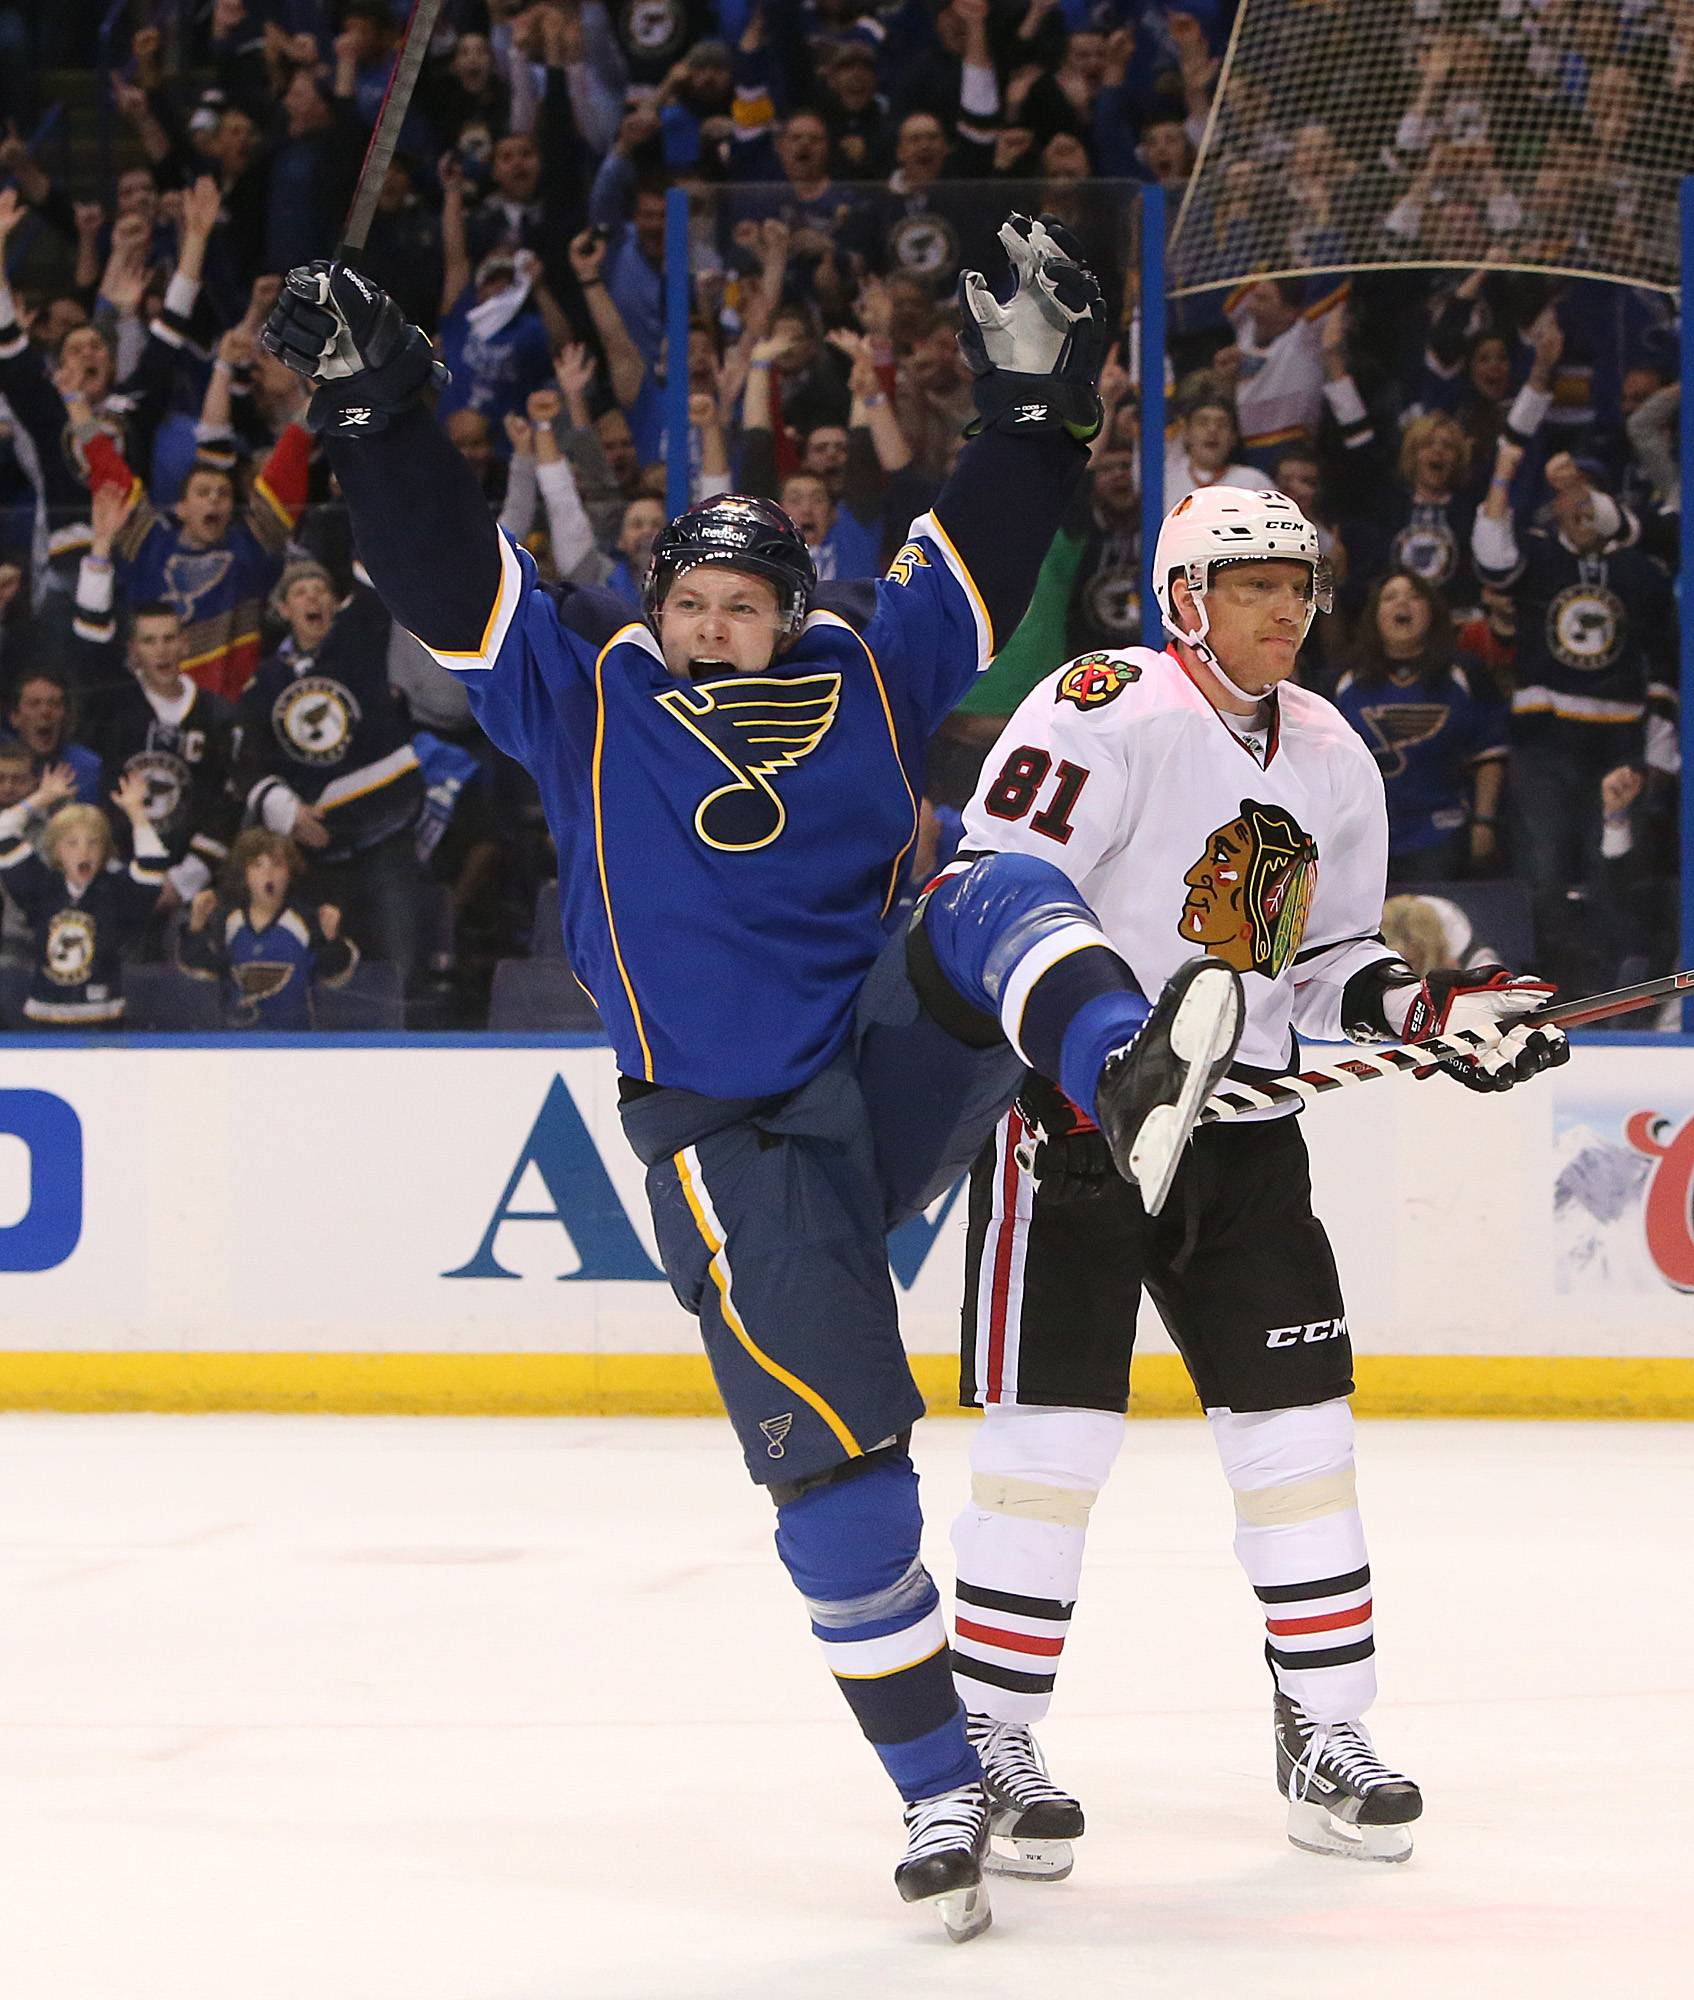 St. Louis Blues right wing Vladimir Tarasenko, left, reacts after scoring a goal against the Chicago Blackhawks during the first period of Game 1 of an NHL hockey opening-round playoff series, Thursday, April 17, 2014, in St. Louis. At right is Blackhawks' Marian Hossa. (AP Photo/St. Louis Post-Dispatch, Chris Lee) EDWARDSVILLE OUT  ALTON OUT